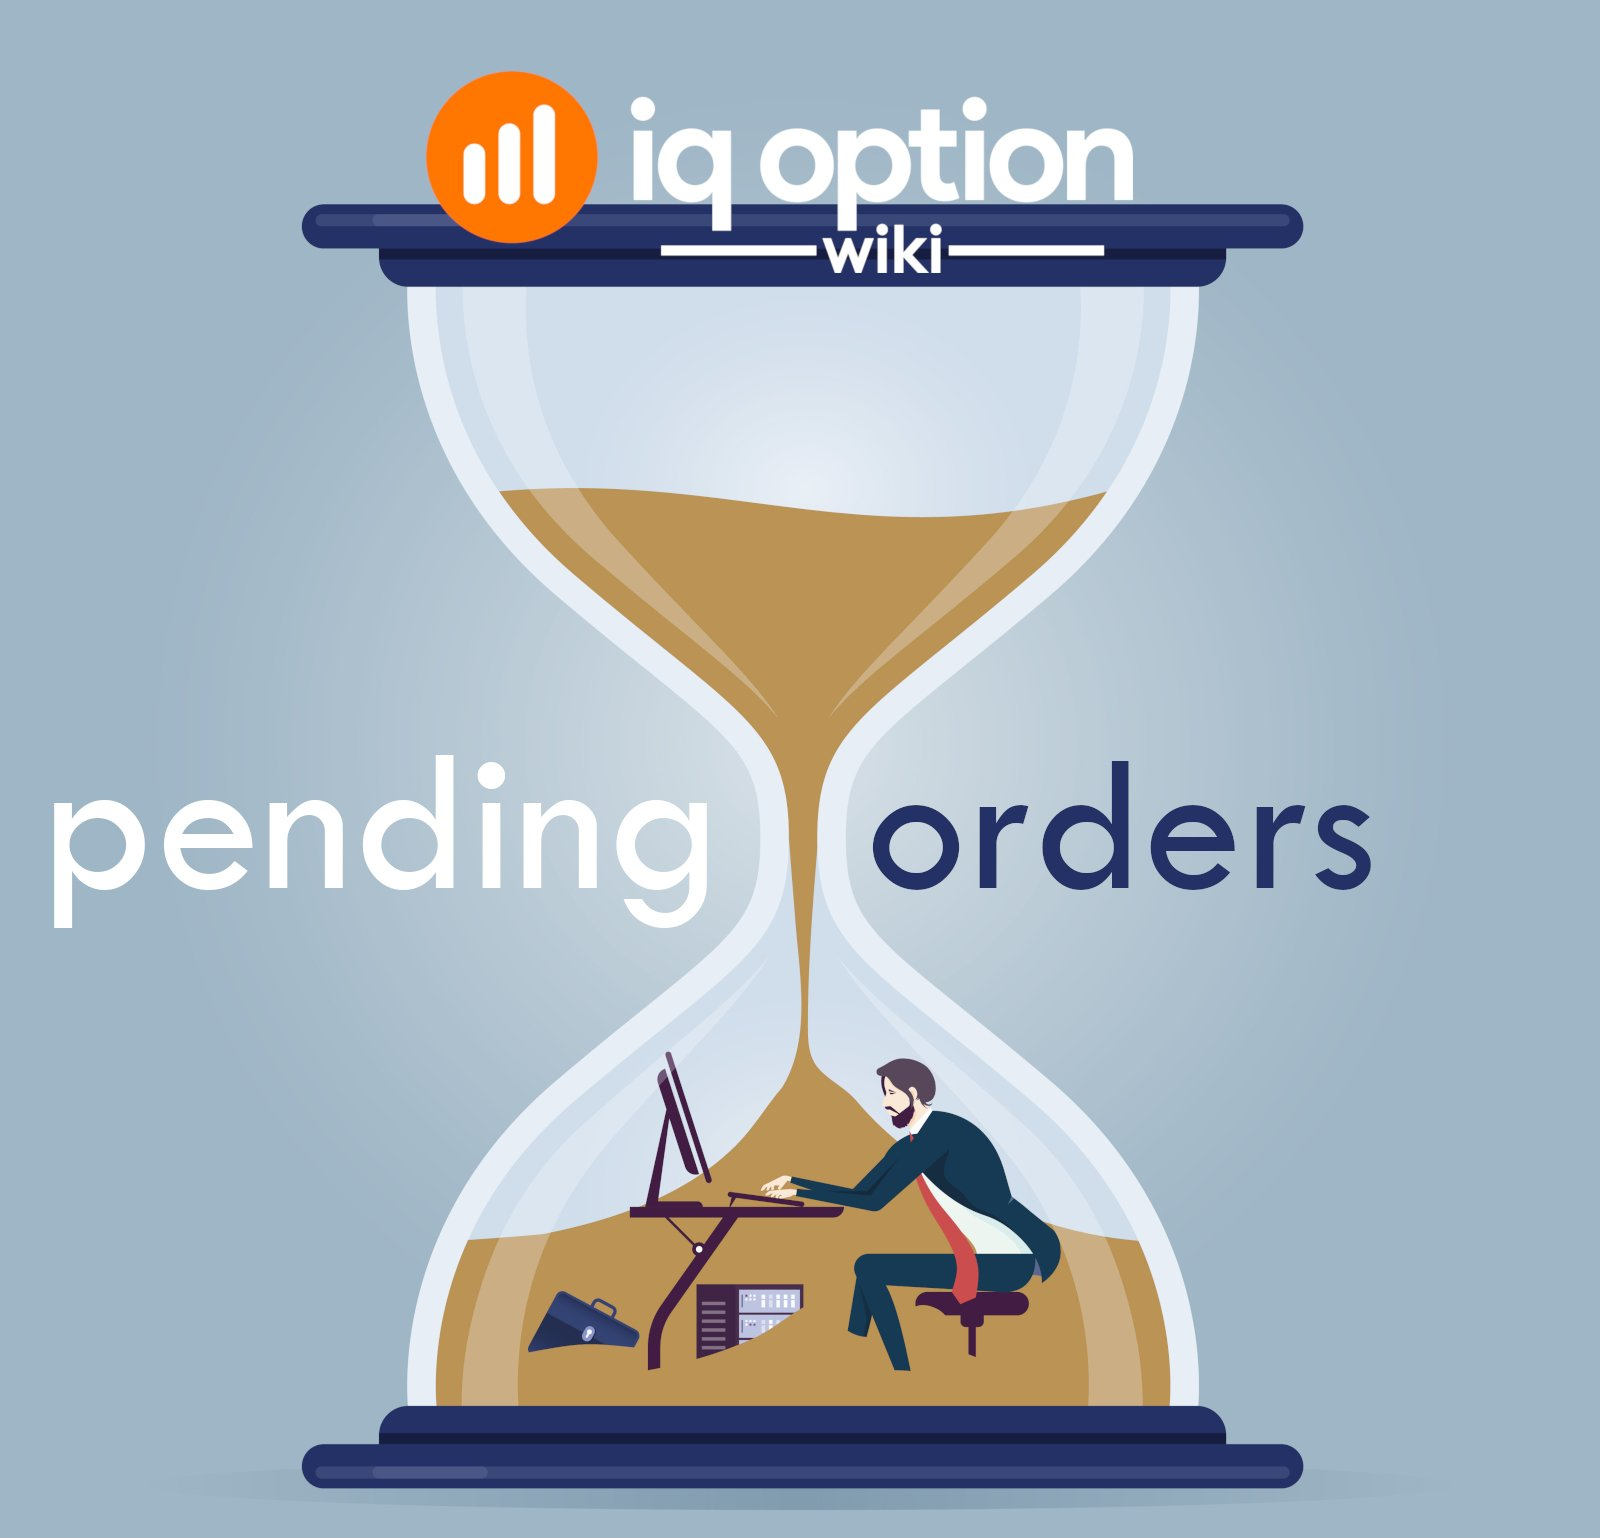 pending orders at iq option